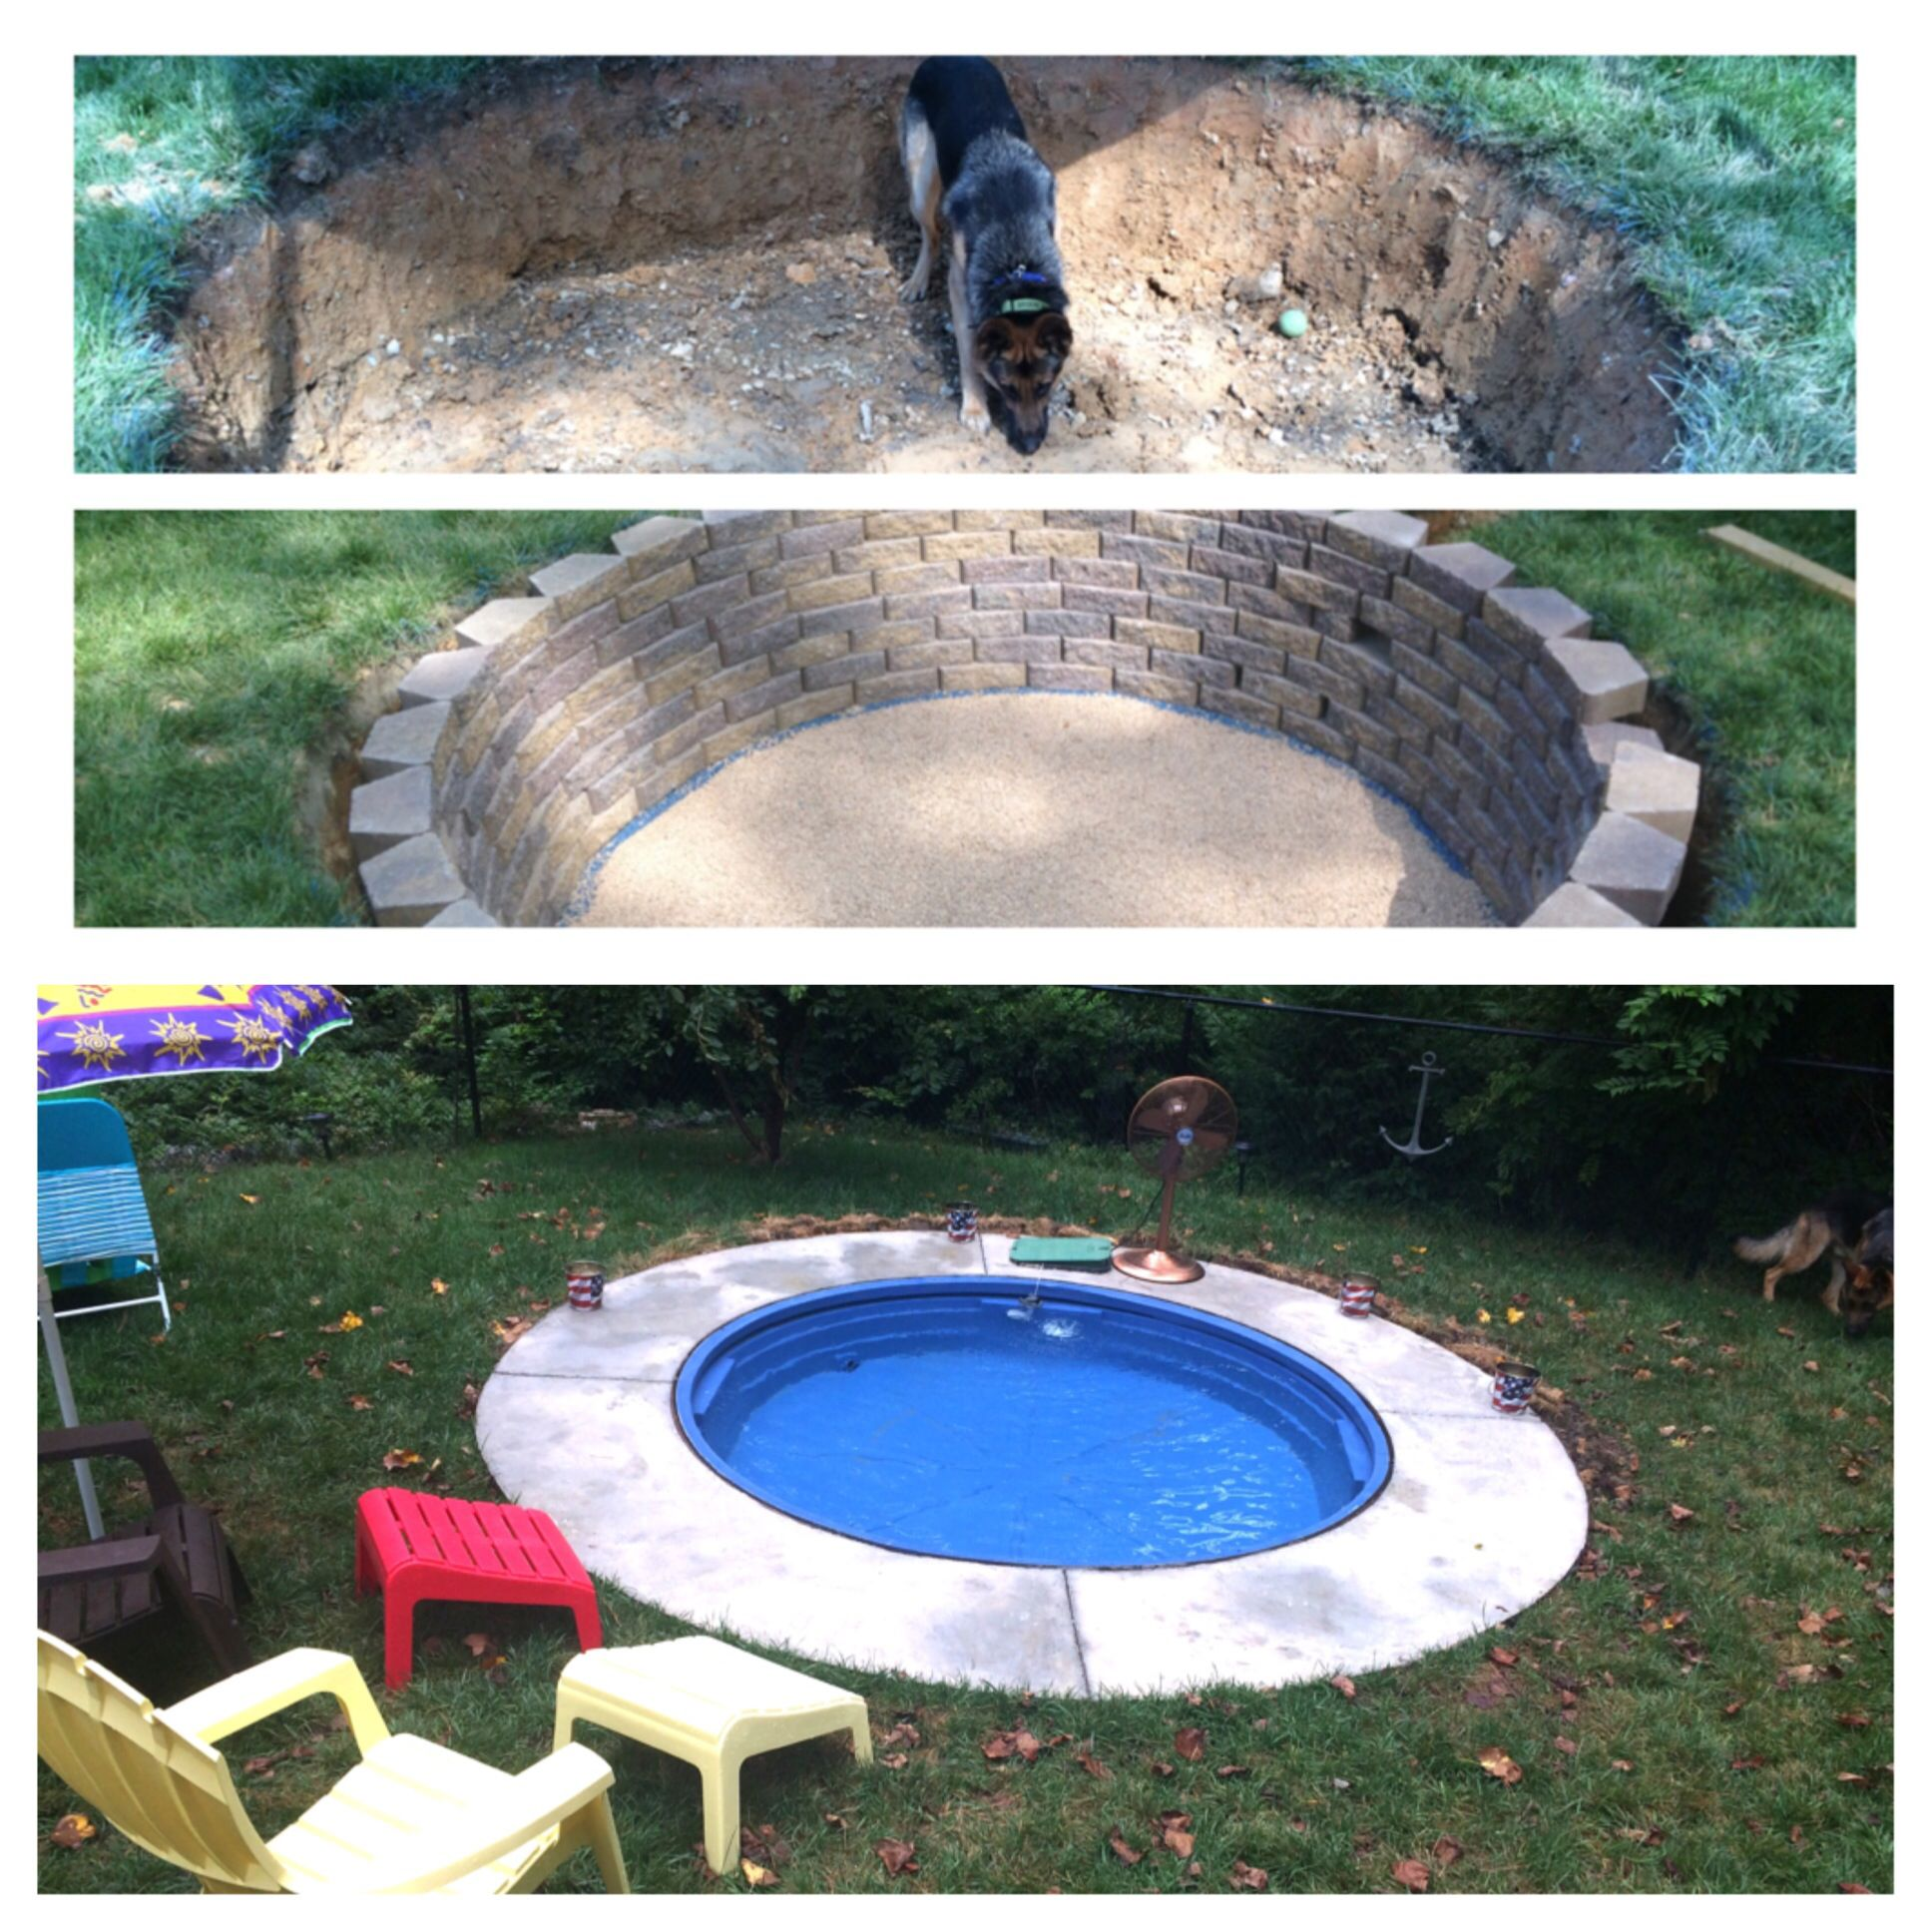 Mini pool build using a stock tank from tractor supply for Build your own swimming pool